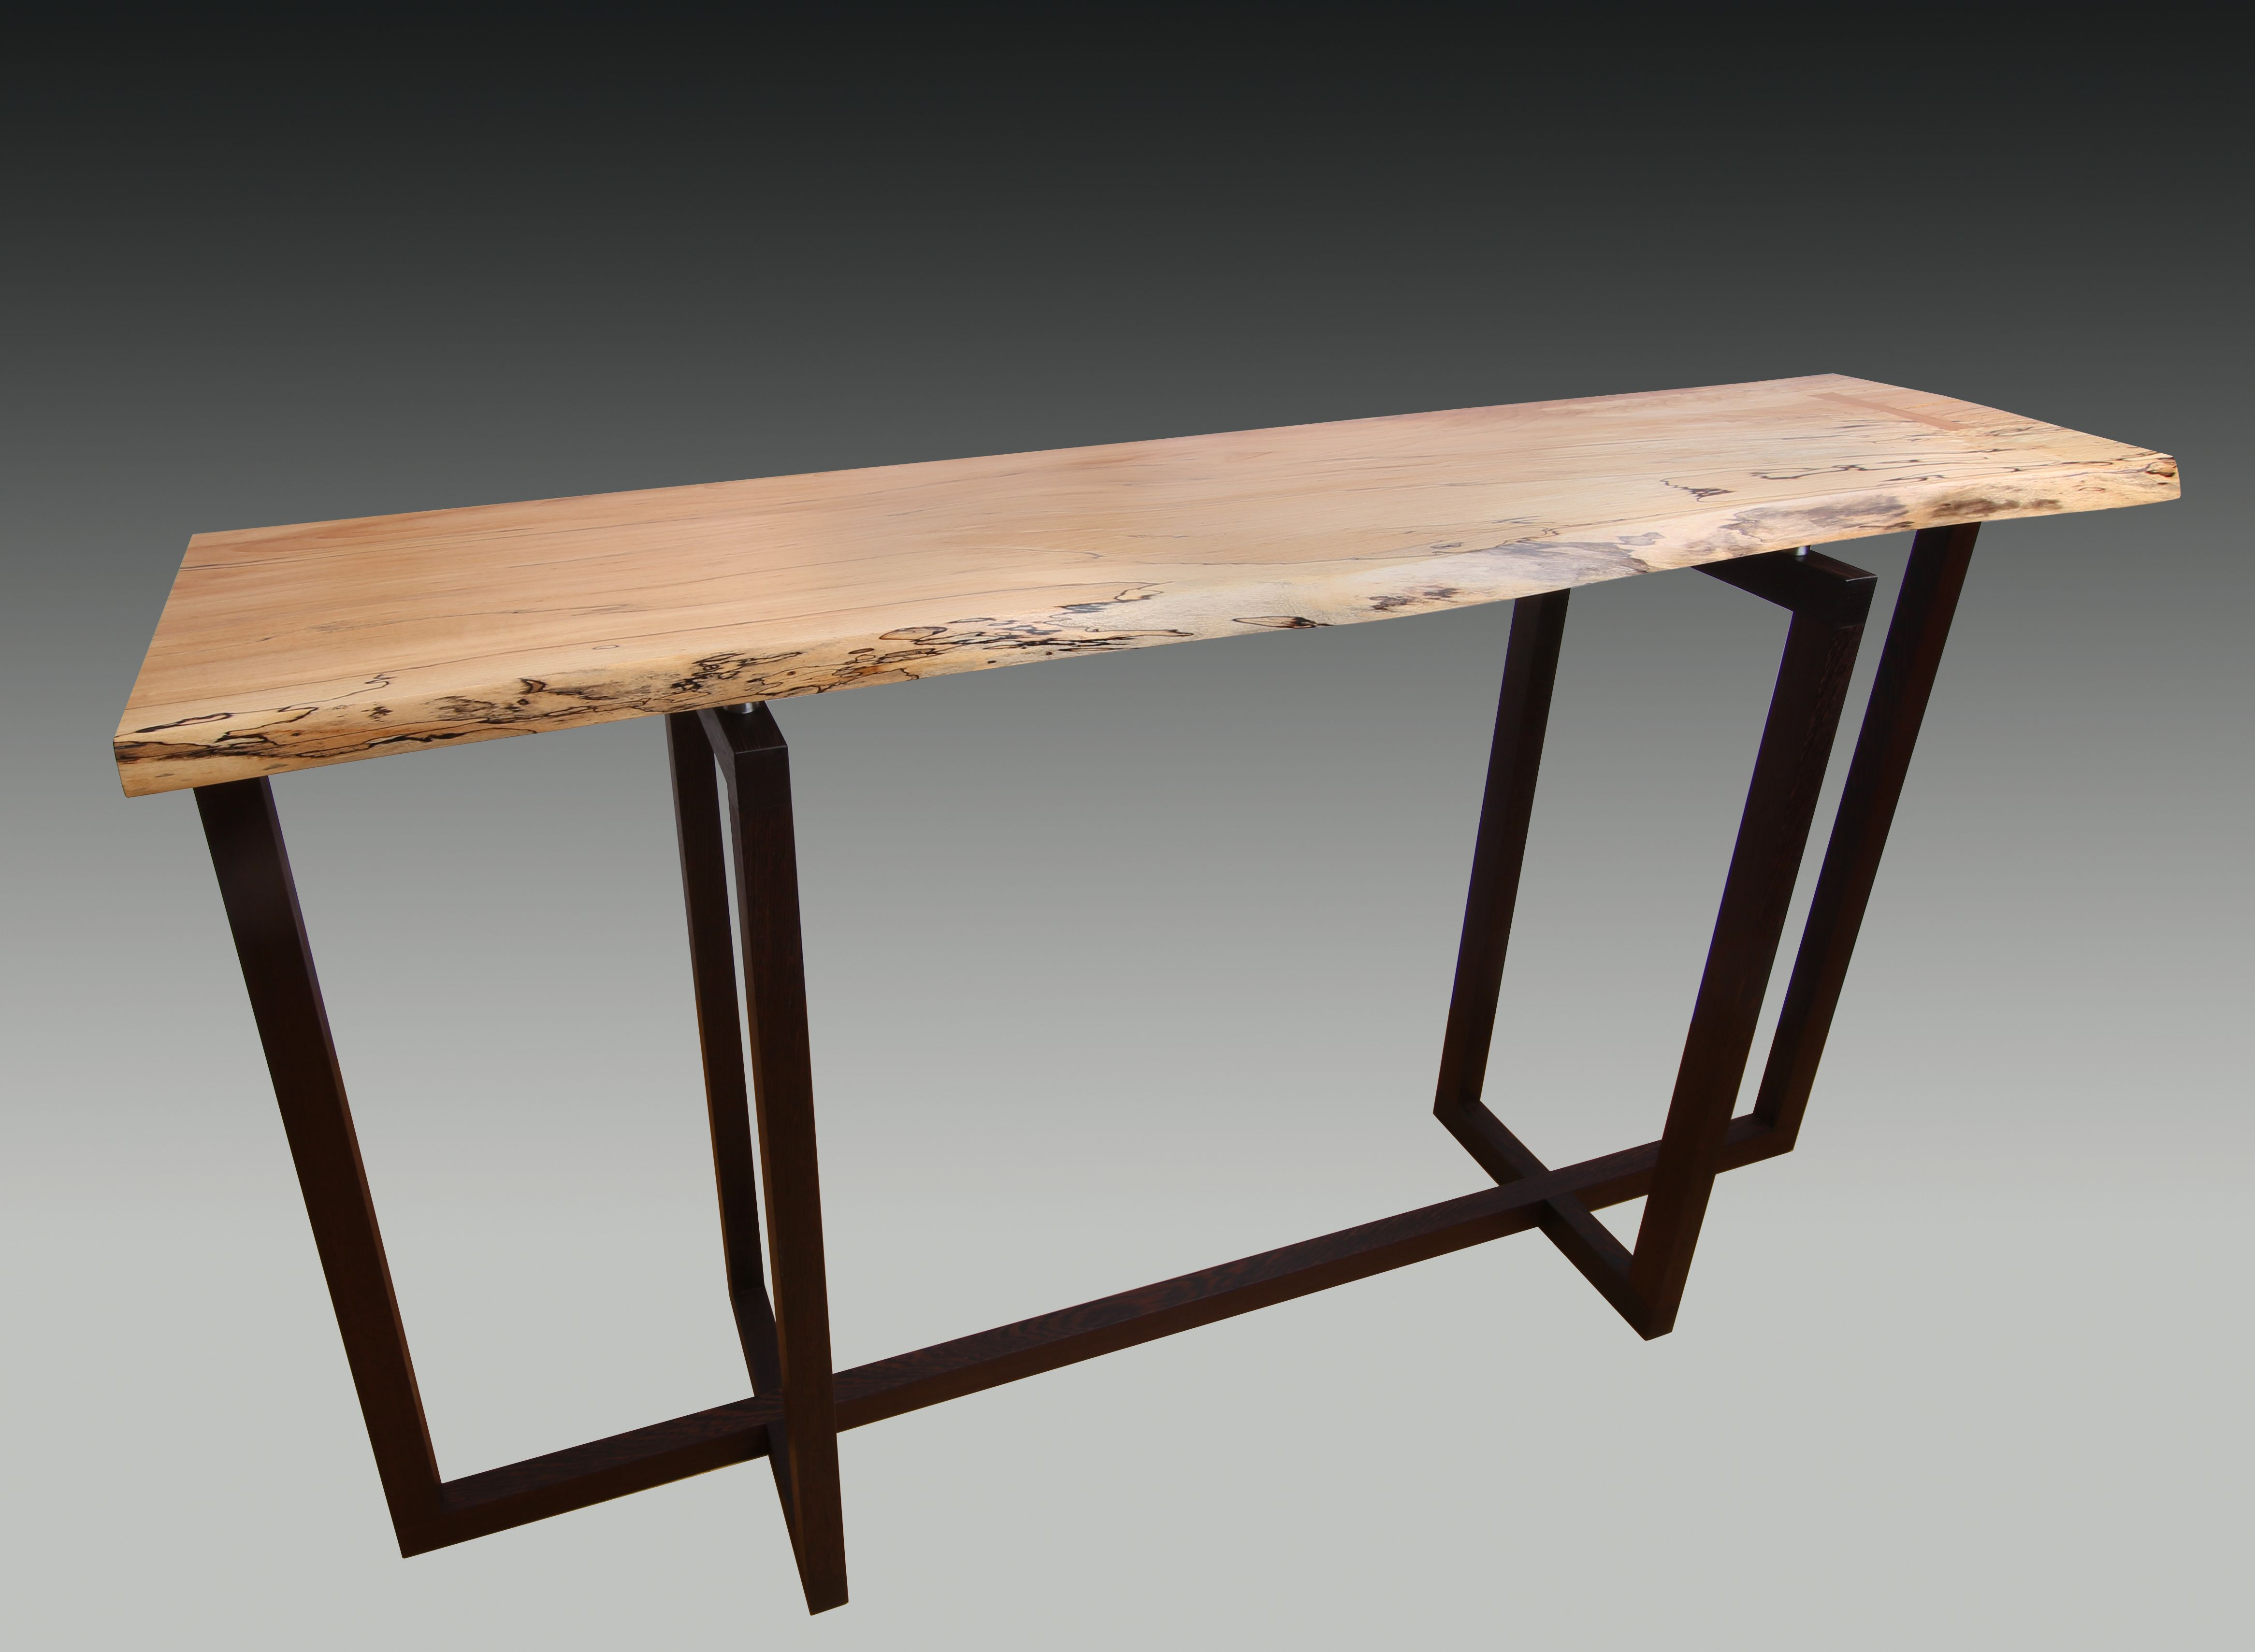 Custom Made, Hand Crafted Furniture. Designed And Built By Ray Finan In His  Arlington VT Studio.